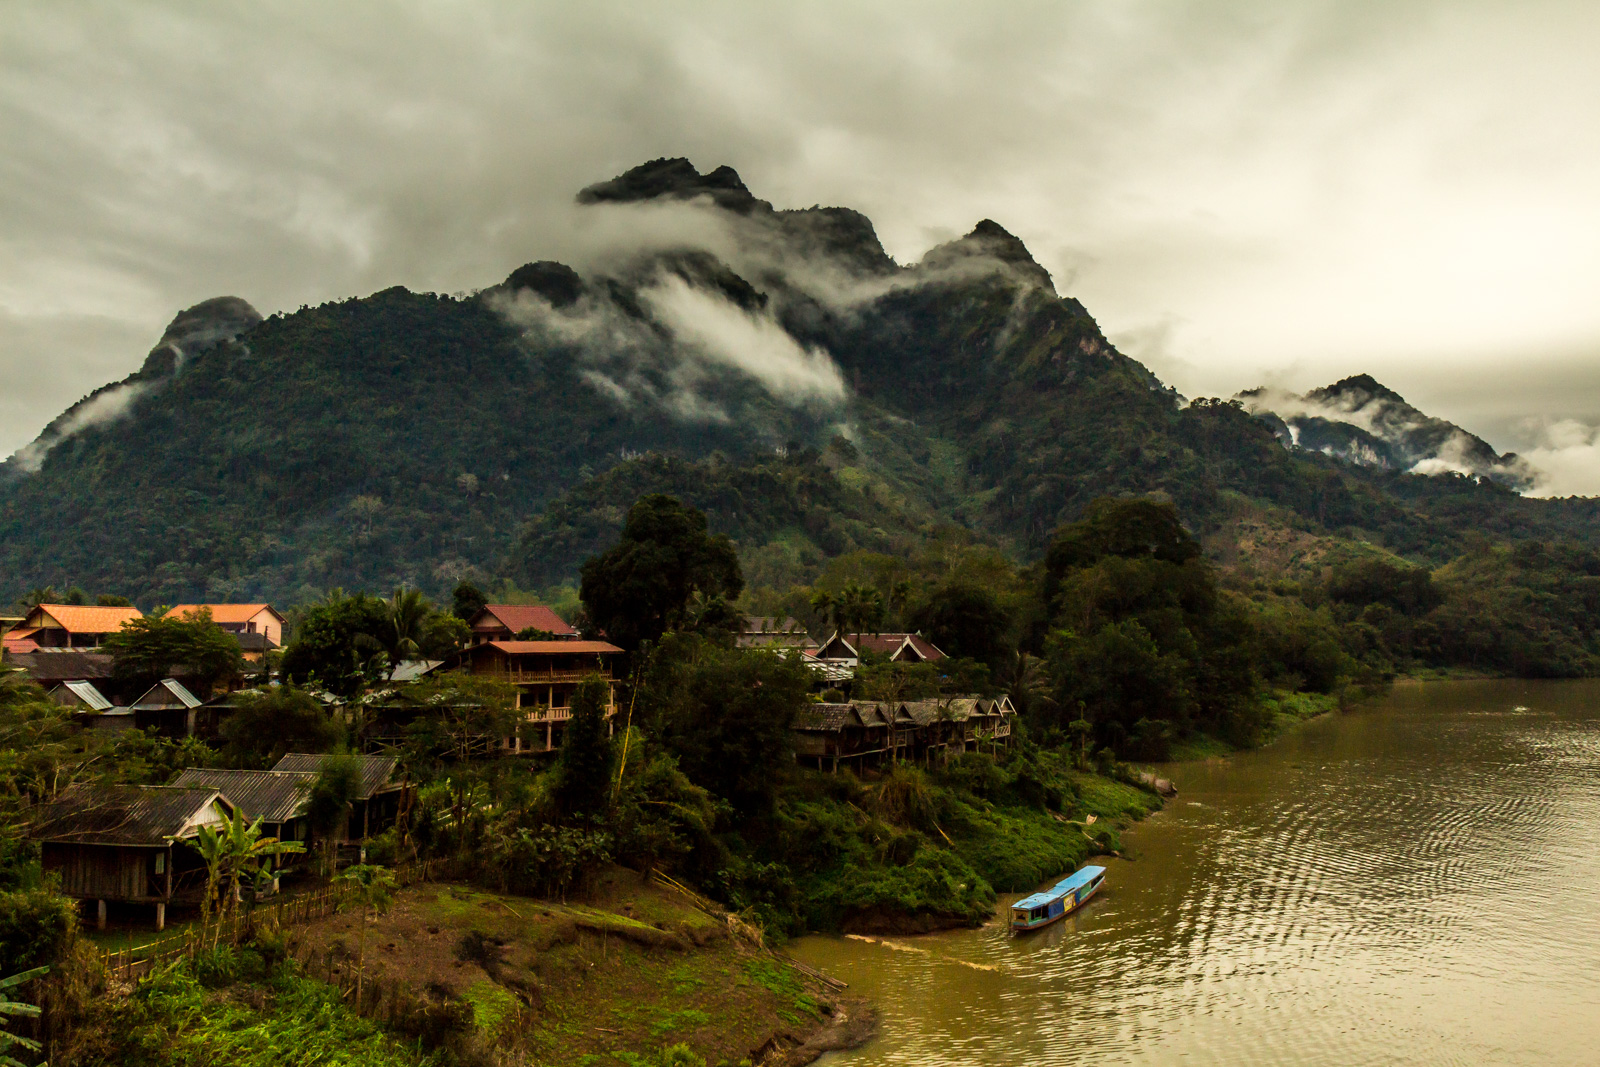 Nong Khiaw in the misty morning.